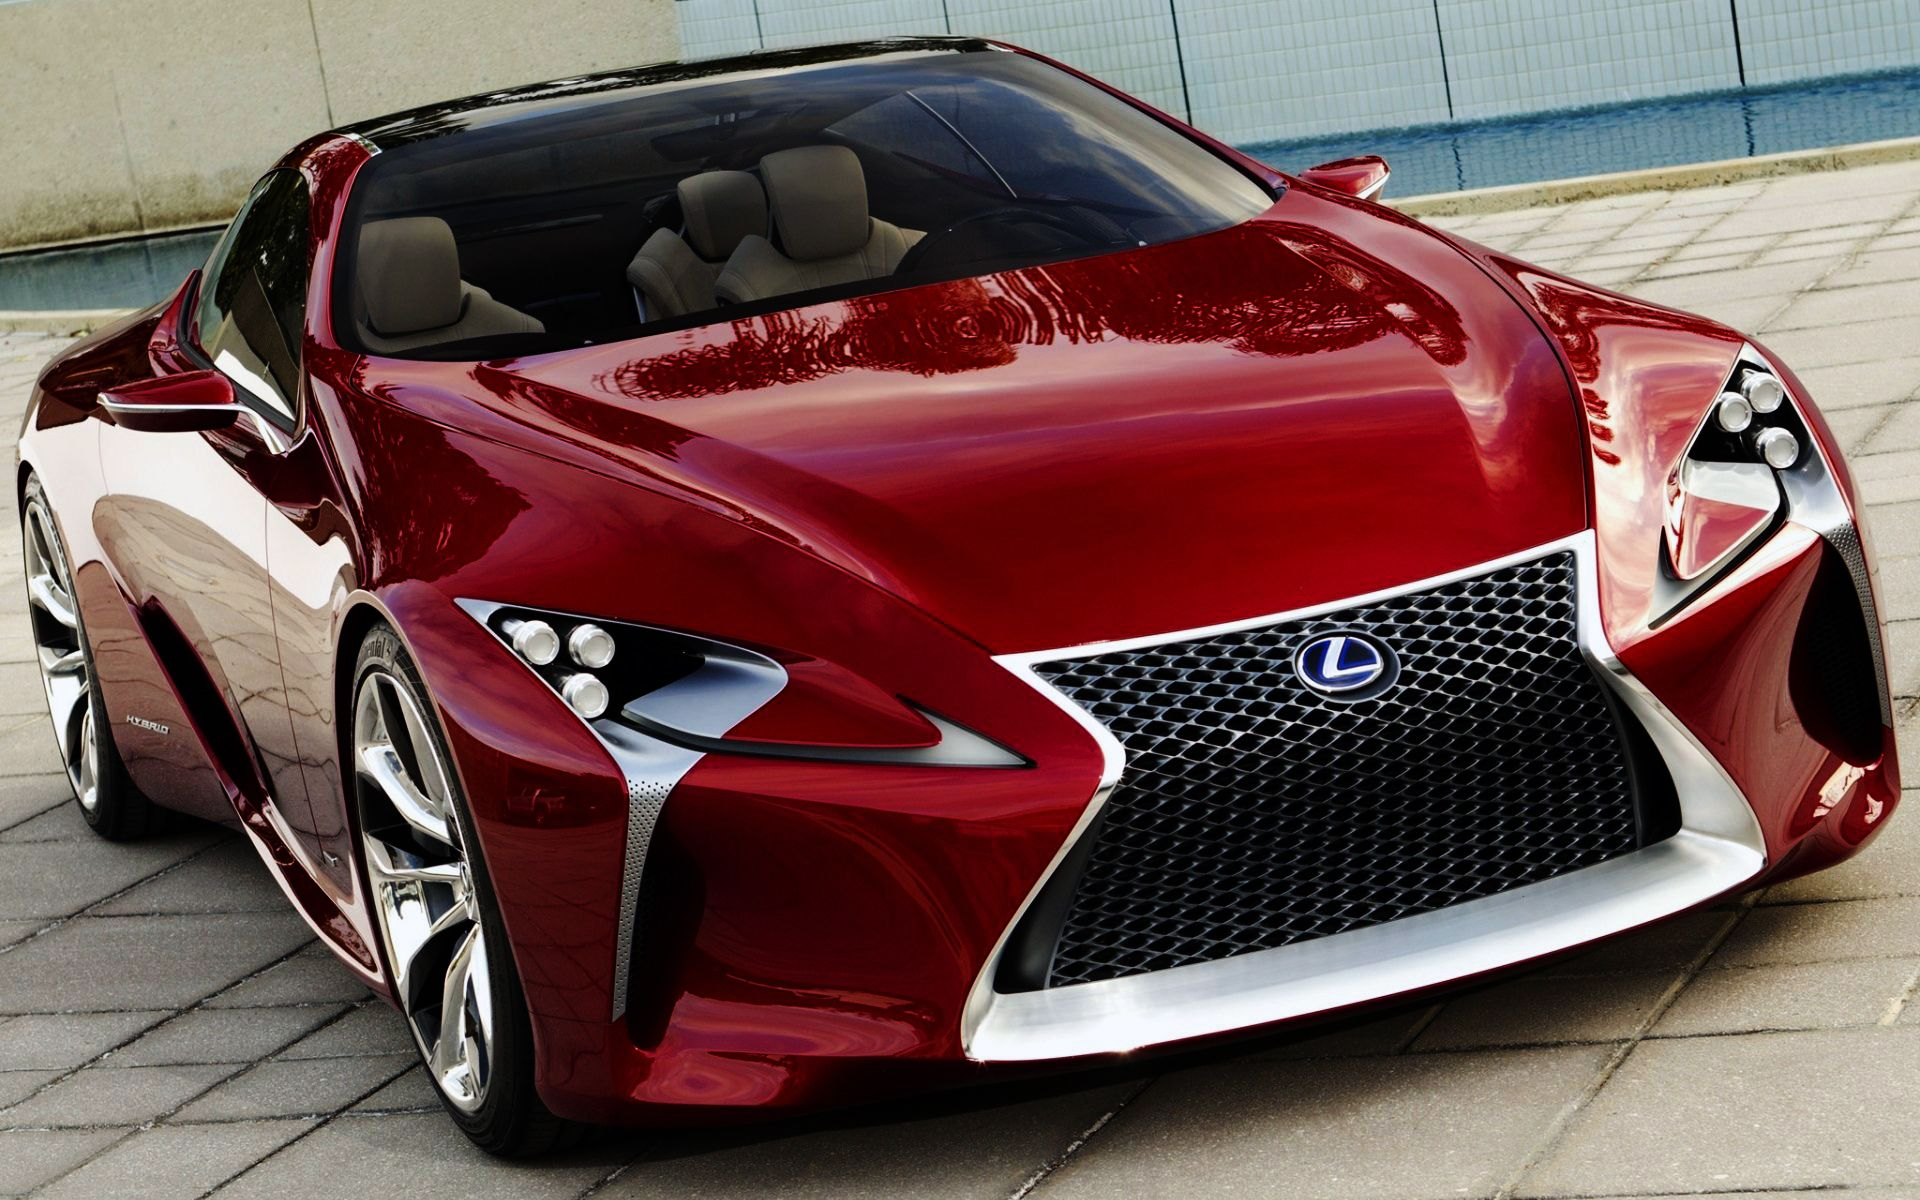 Best Lexus Sports Car Ideas On Pinterest Lexus Sport Lexus - Red sports car